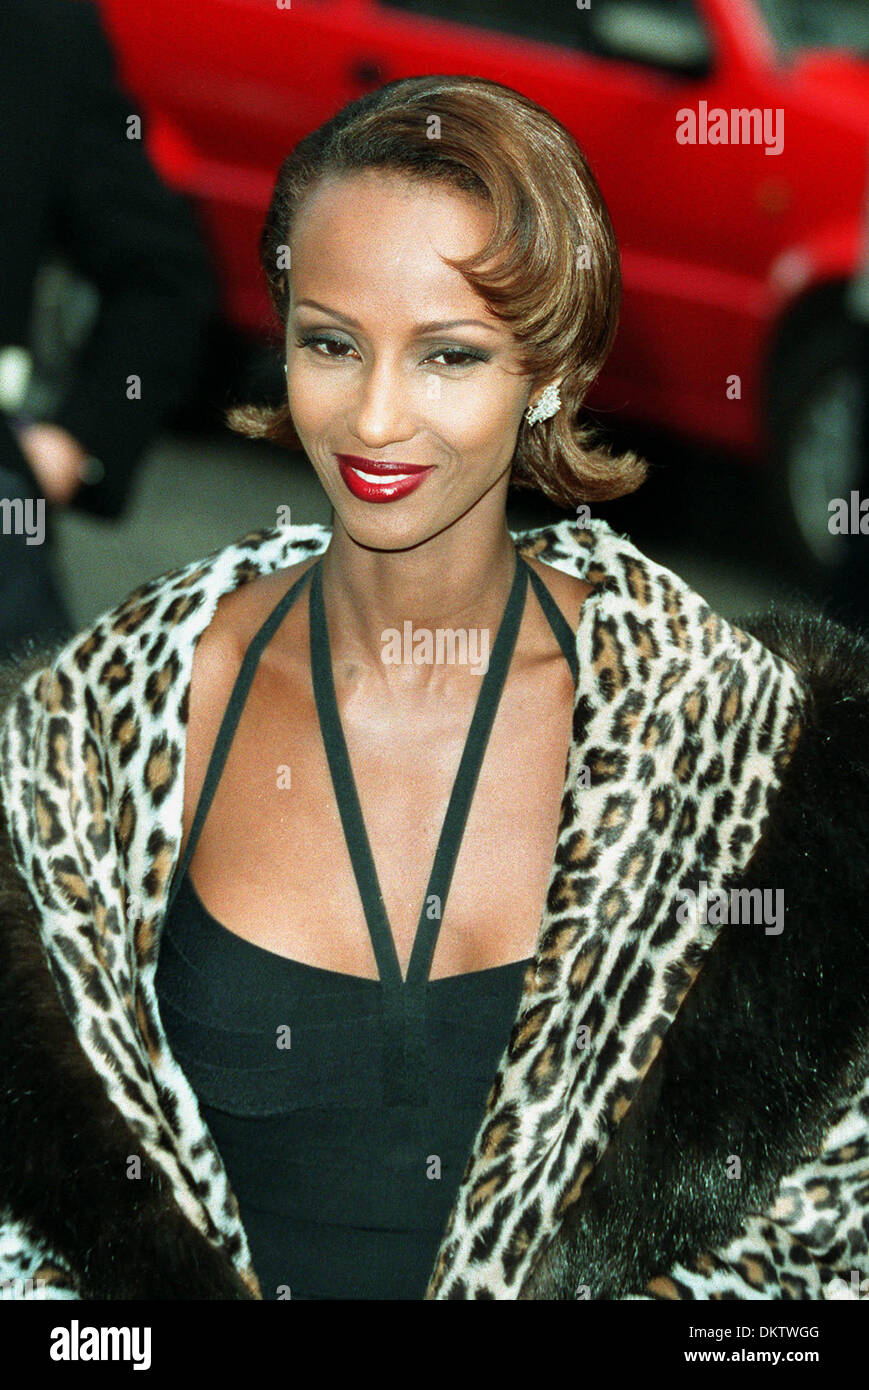 iman model 21 04 1995 f8a8c stock photo 63856480 alamy